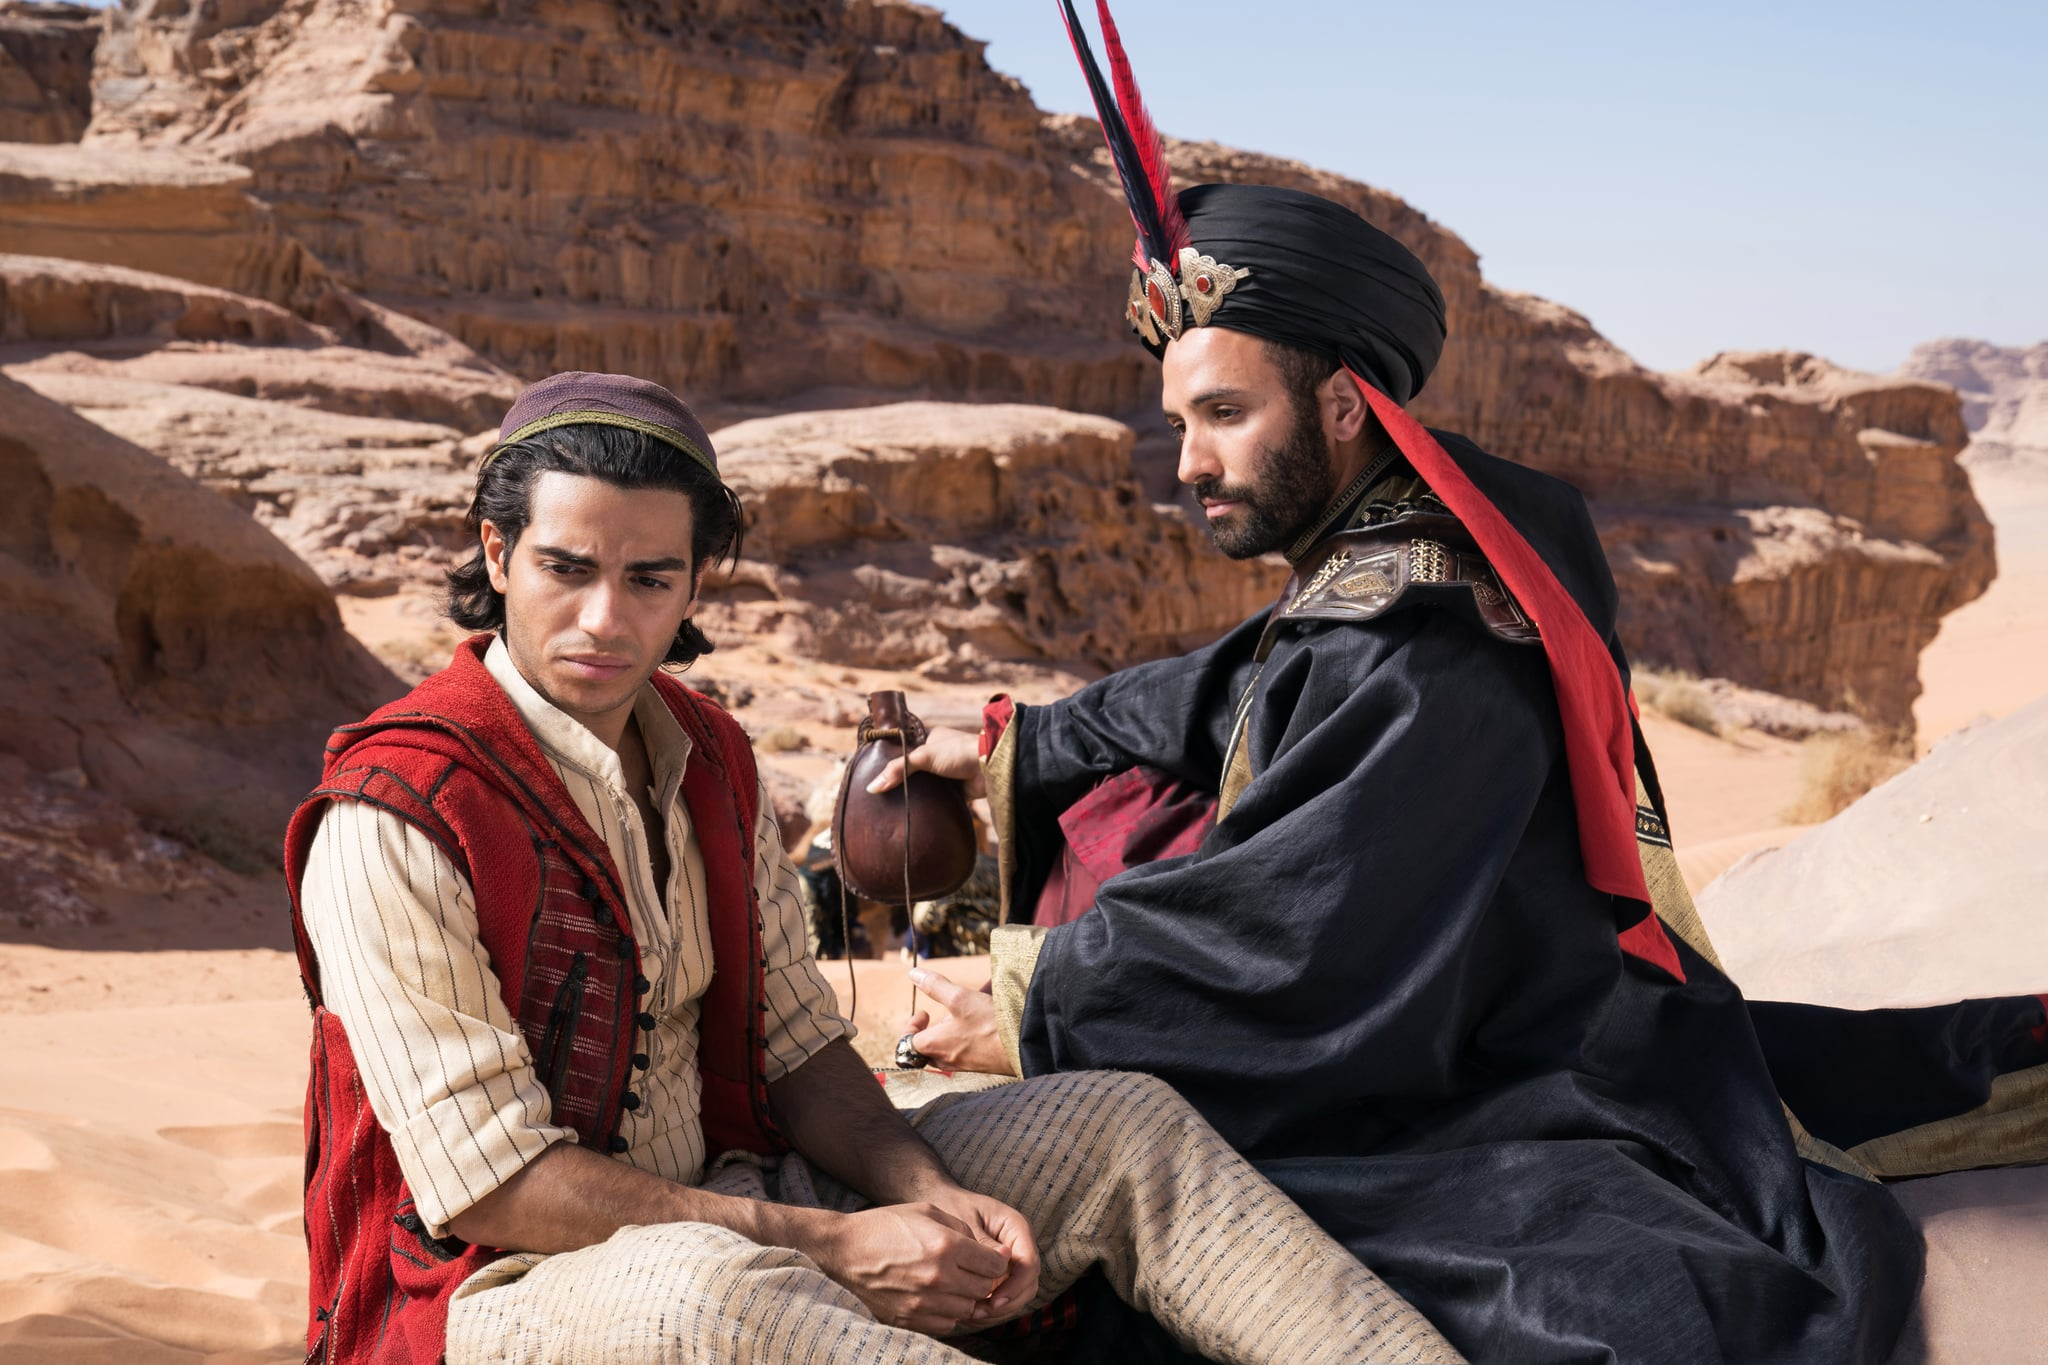 (l to r) Aladdin (Mena Massoud) is offered a deal by the vizier Jafar (Marwan Kenzari) in Aladdin (2019)